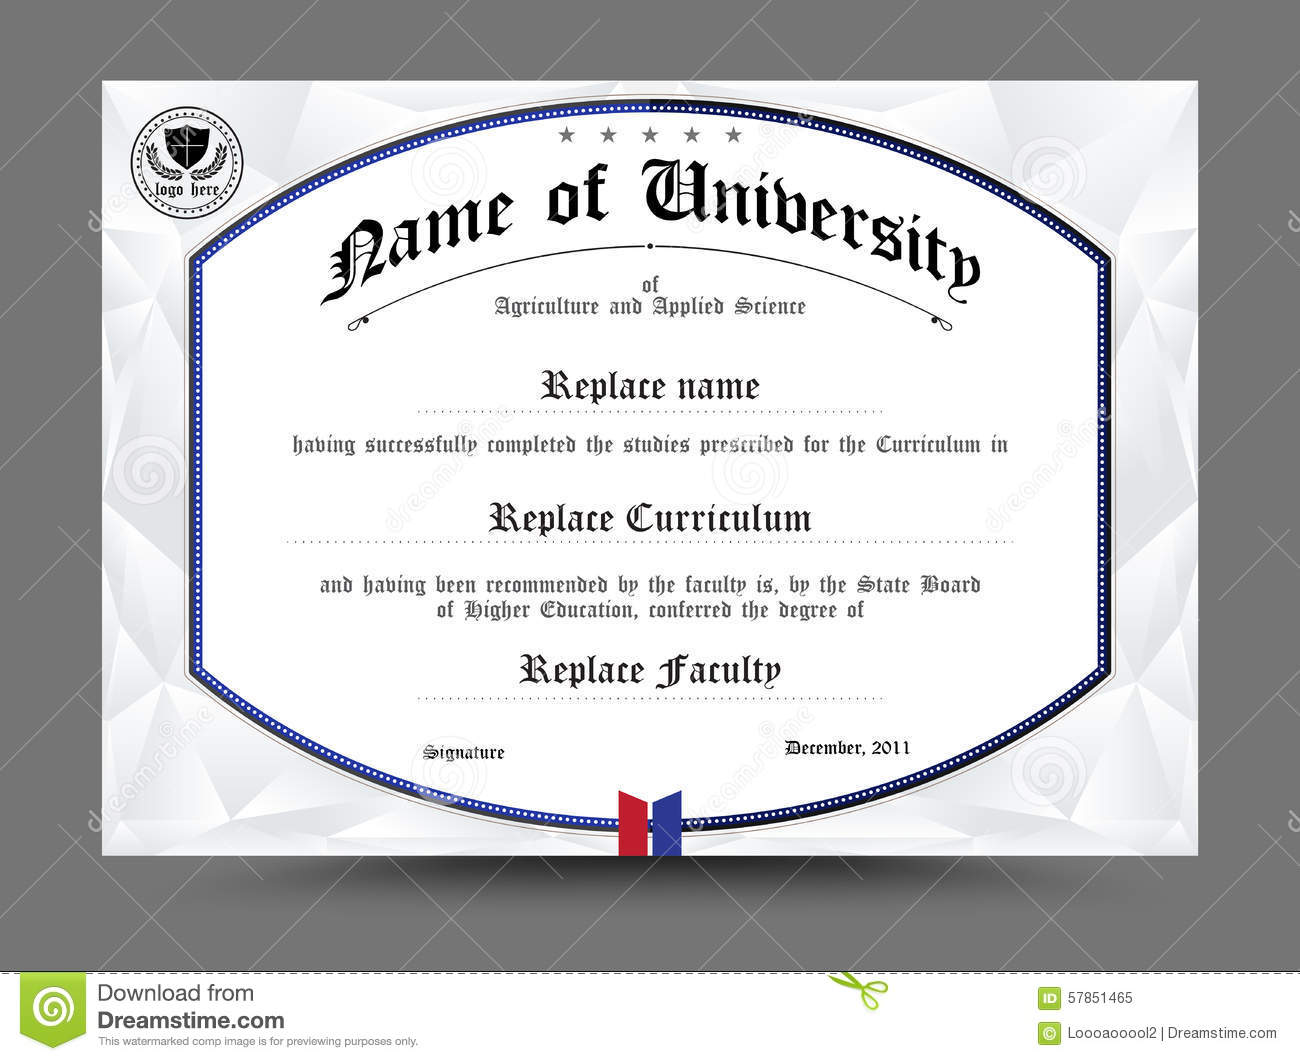 Netball certificate templates image collections templates netball certificate template free images certificate design and 156 best certificate template design government appraiser sample yadclub Gallery